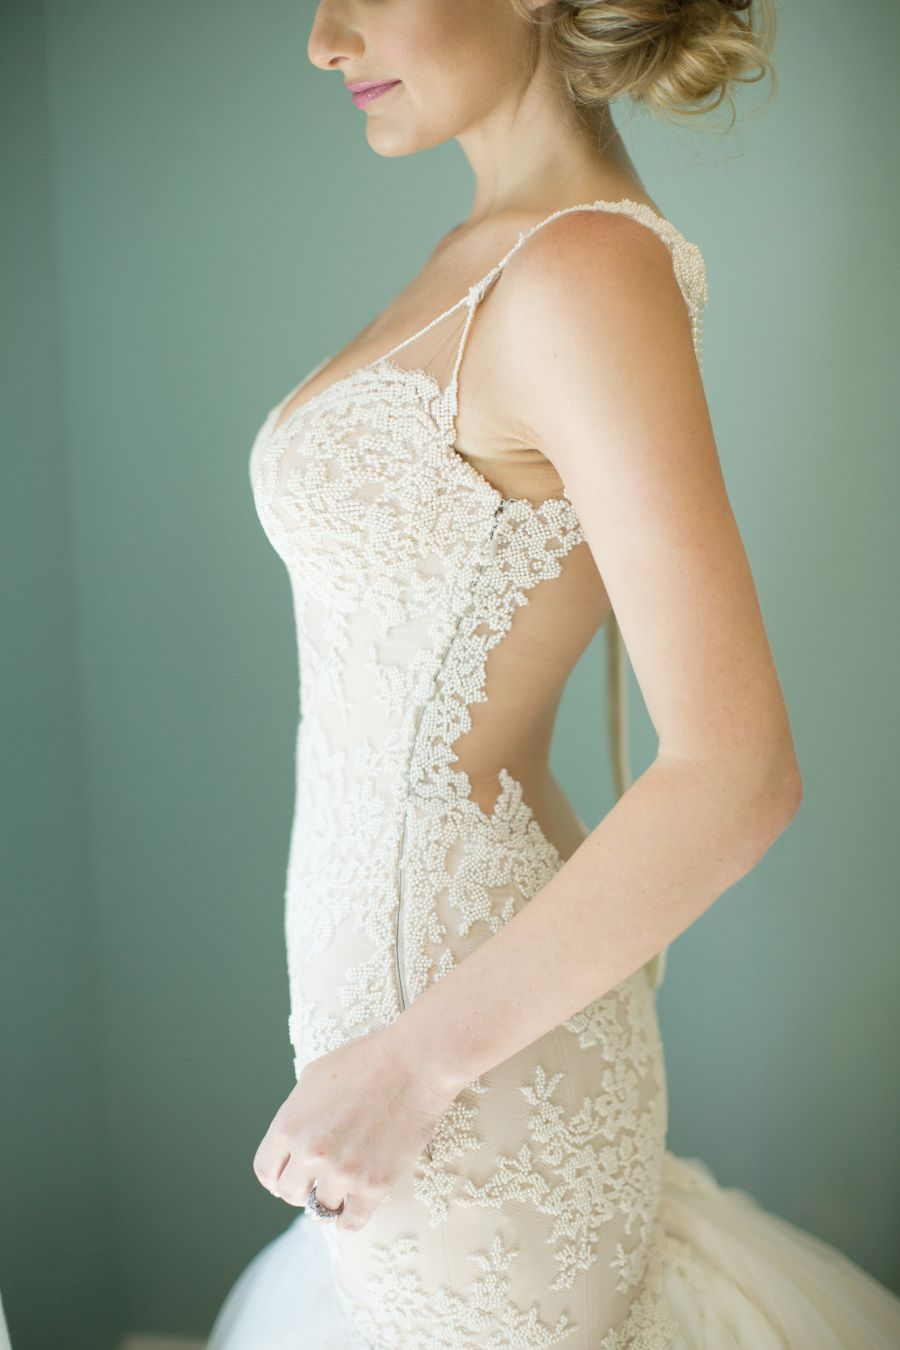 Your jaw will drop further than this brideus plunging back dress